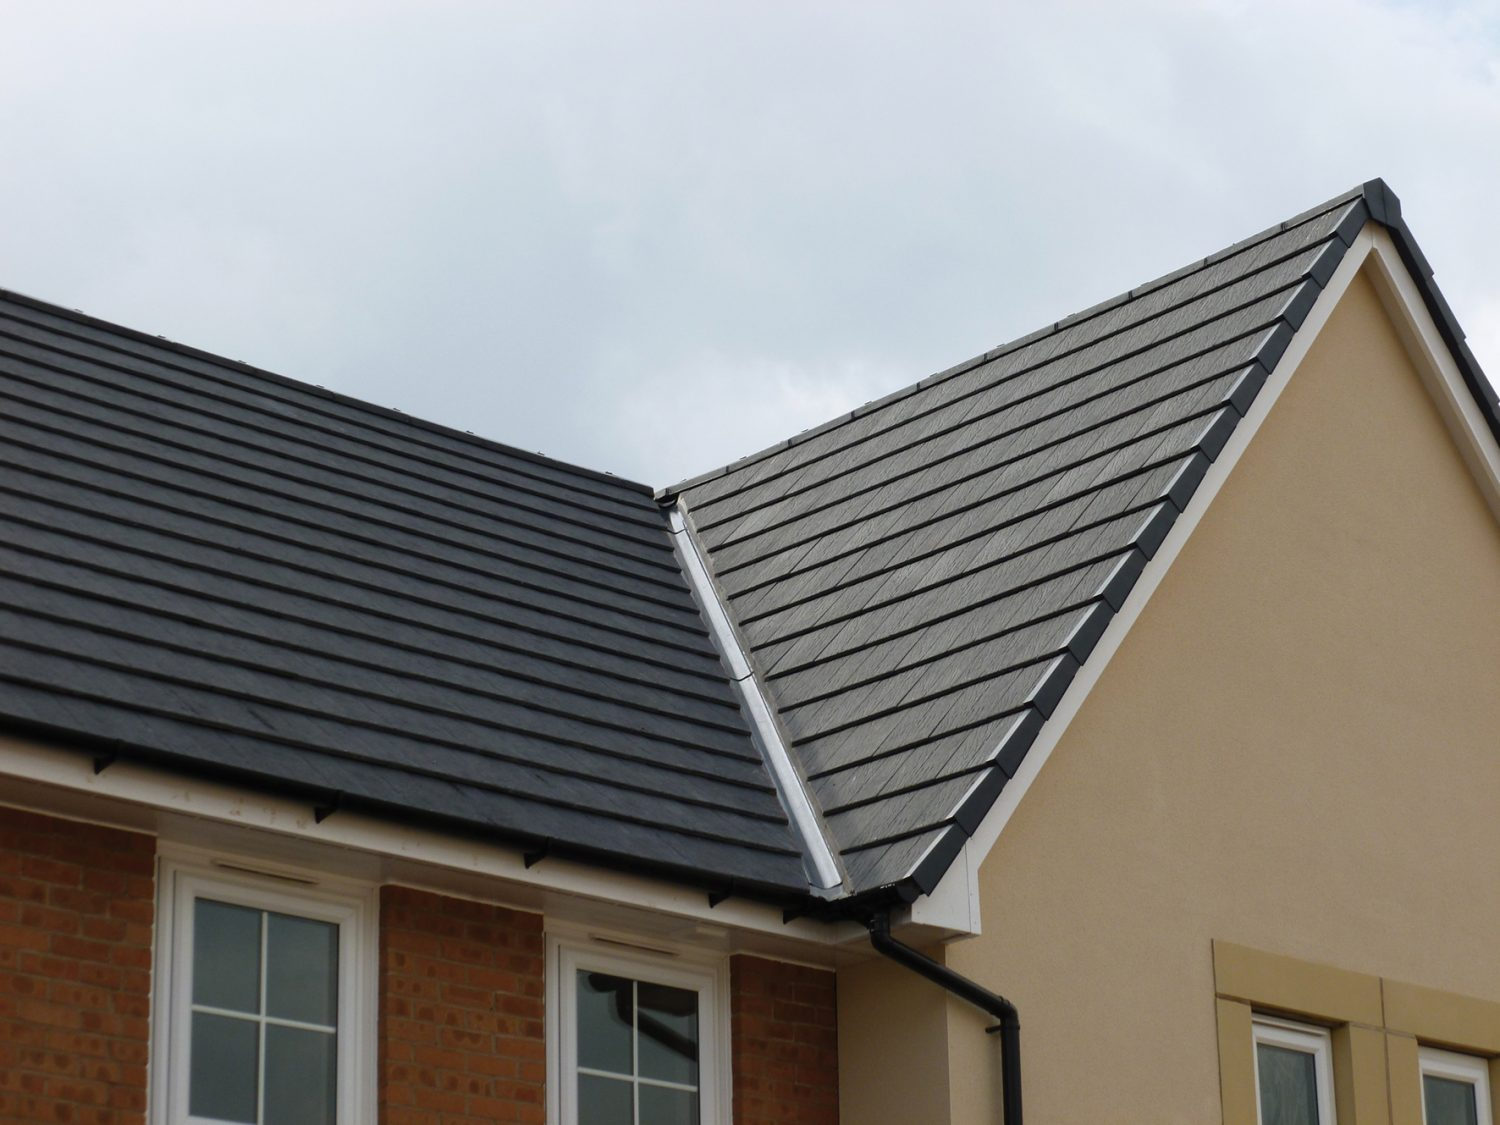 Russell Galloway Tile M Amp M Roofing Supplies Ltd